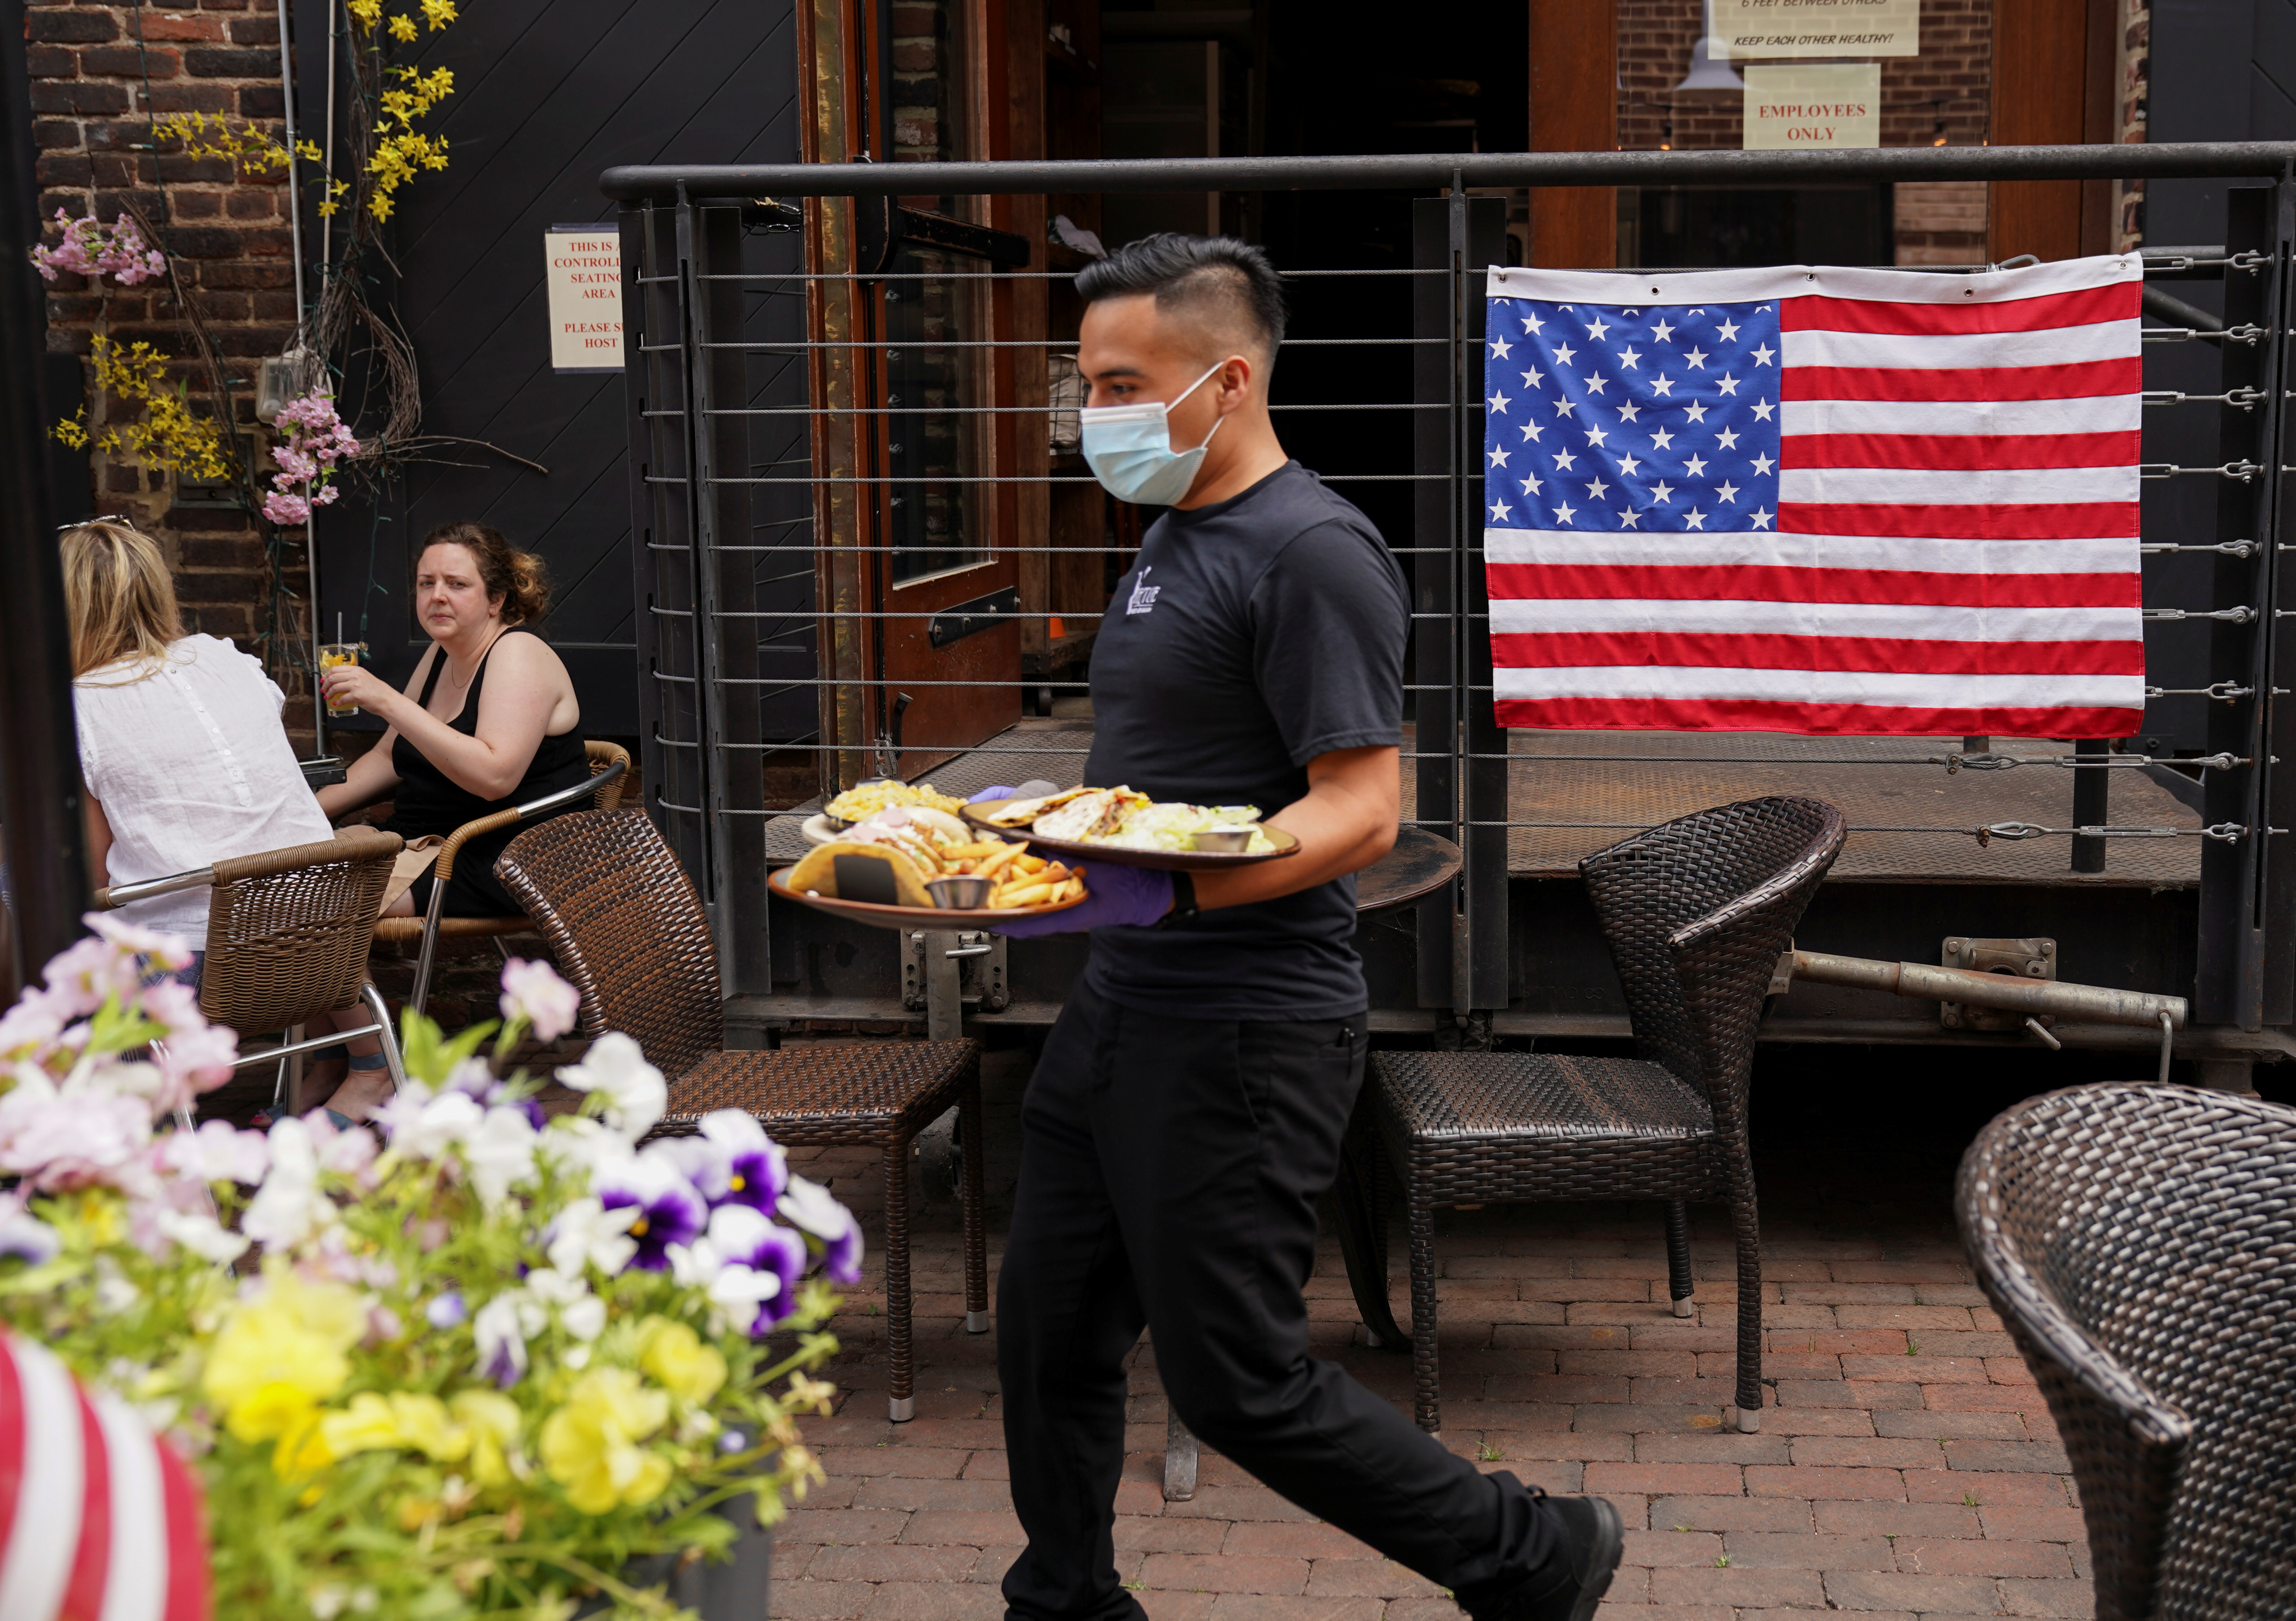 A waiter wearing a mask brings food to customers seated outside in front of an American flag